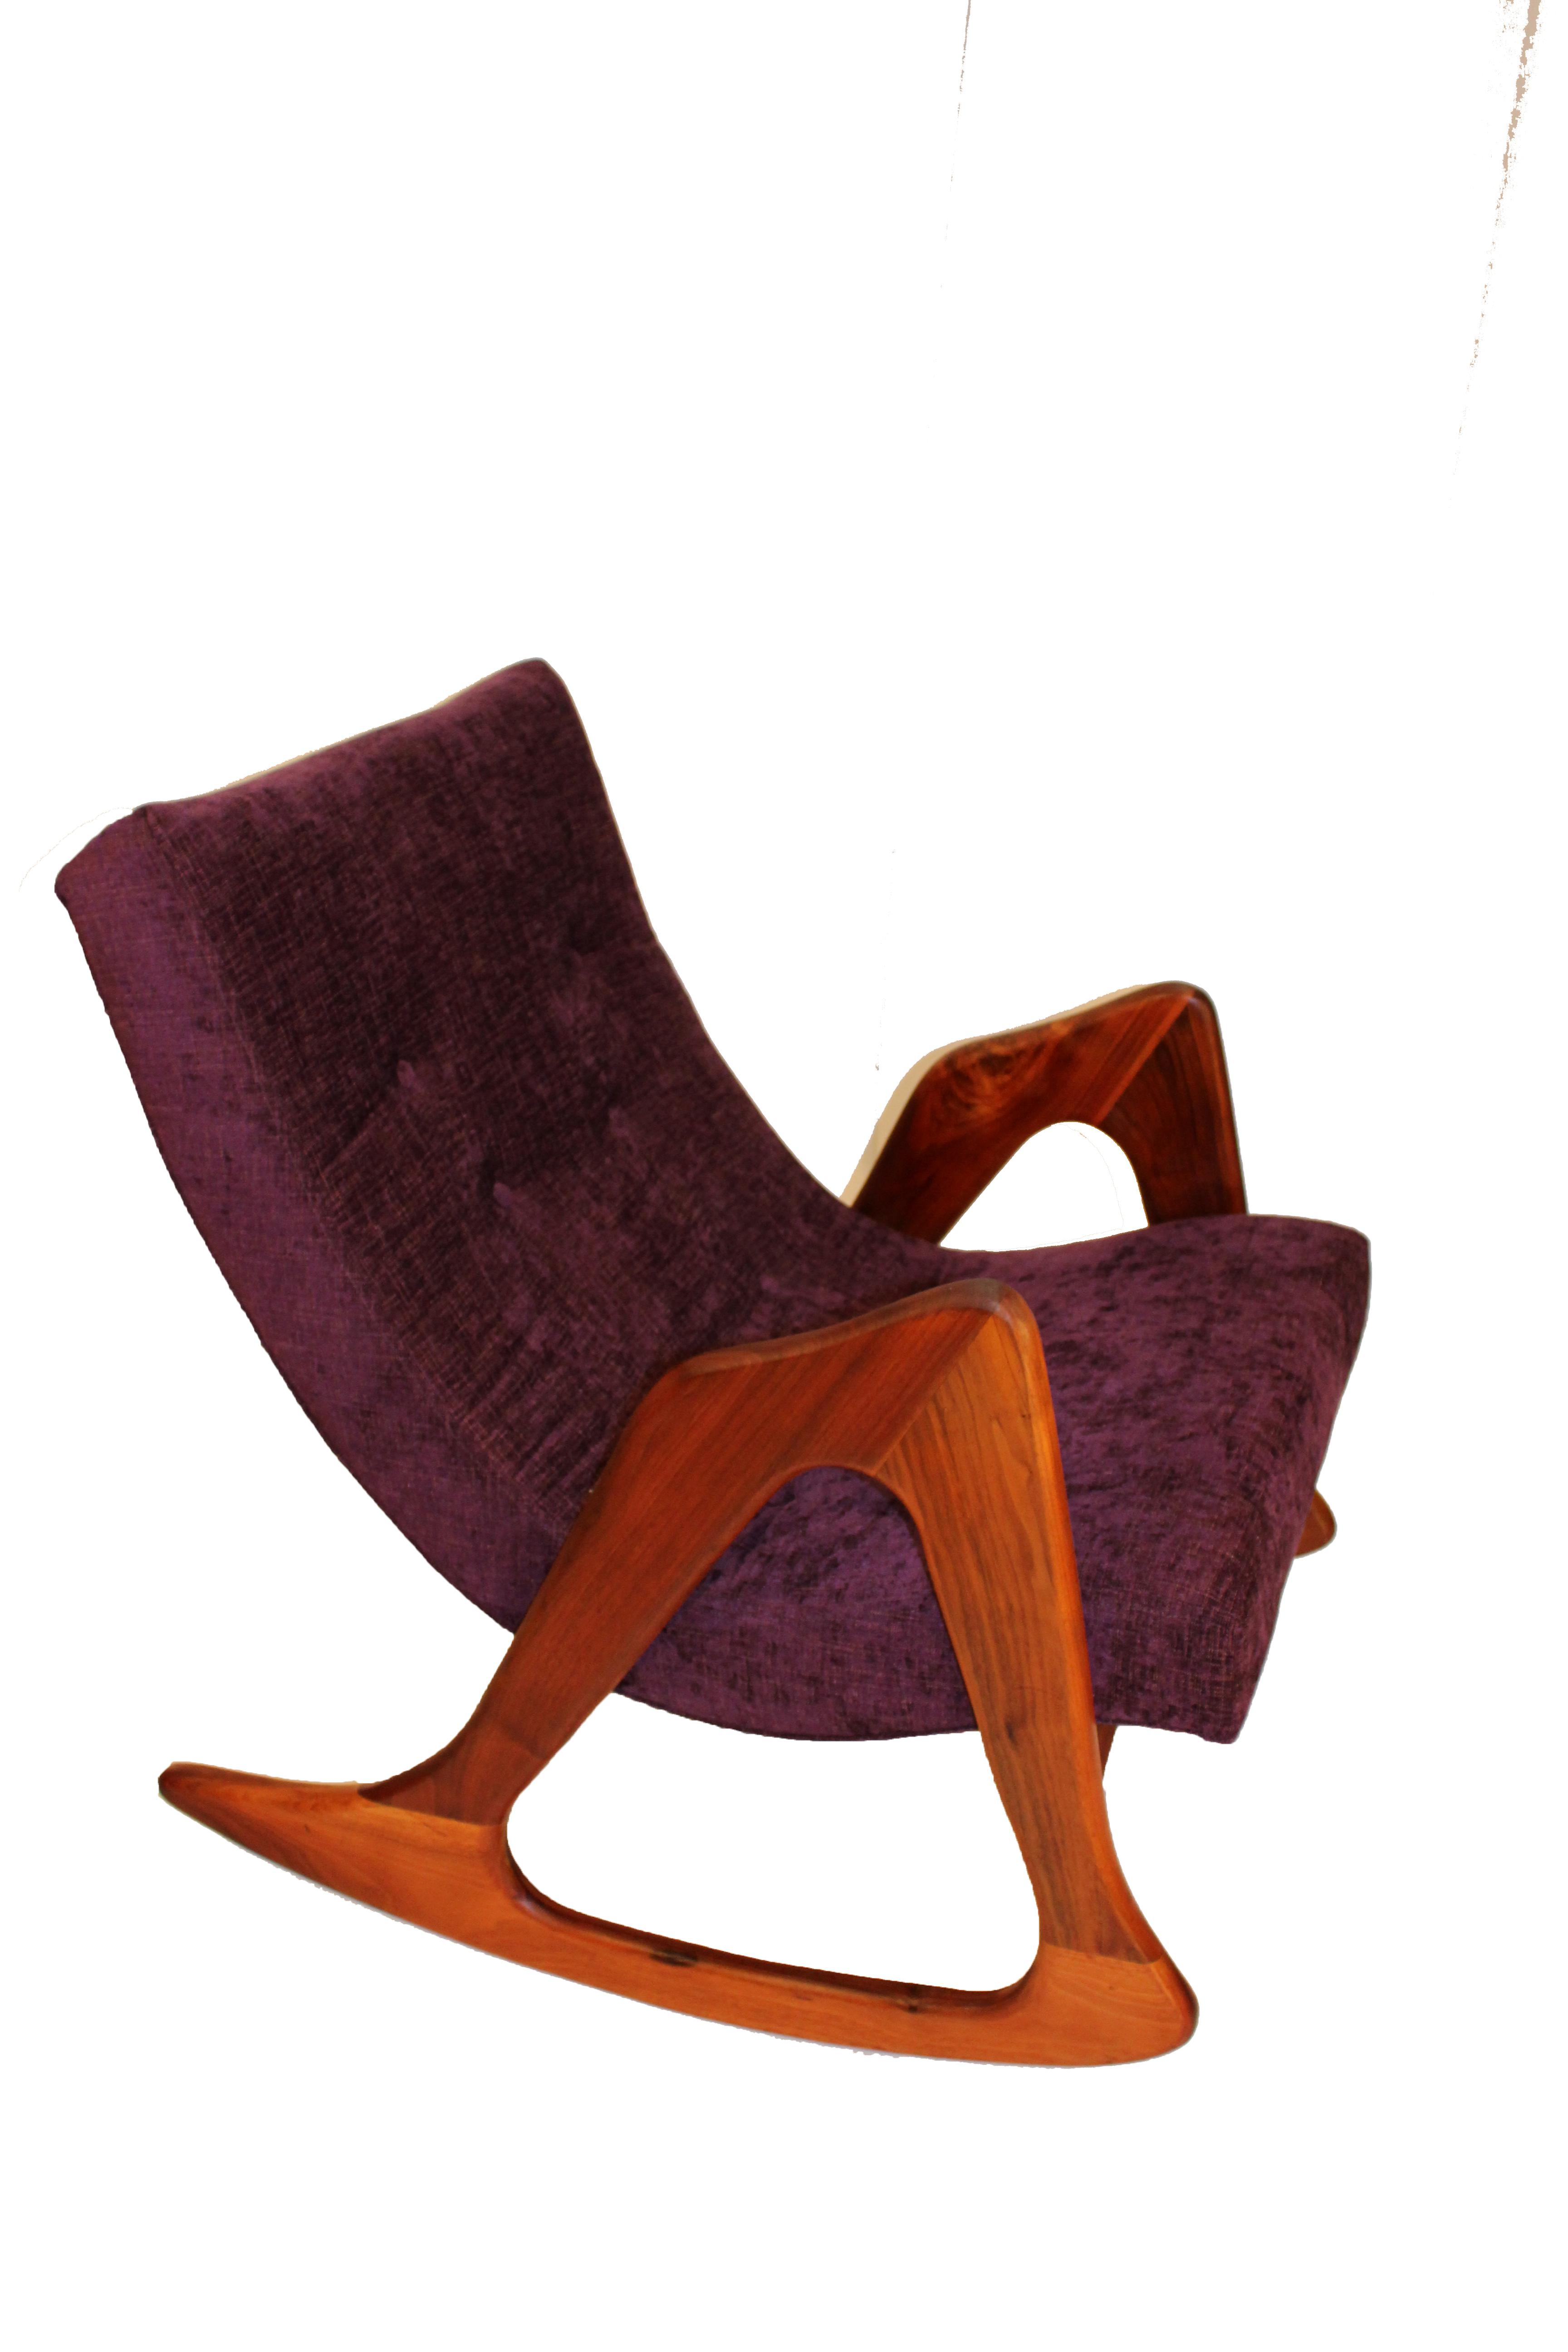 Adrian Pearsall Rocker For Craft Associates   Image 2 Of 5